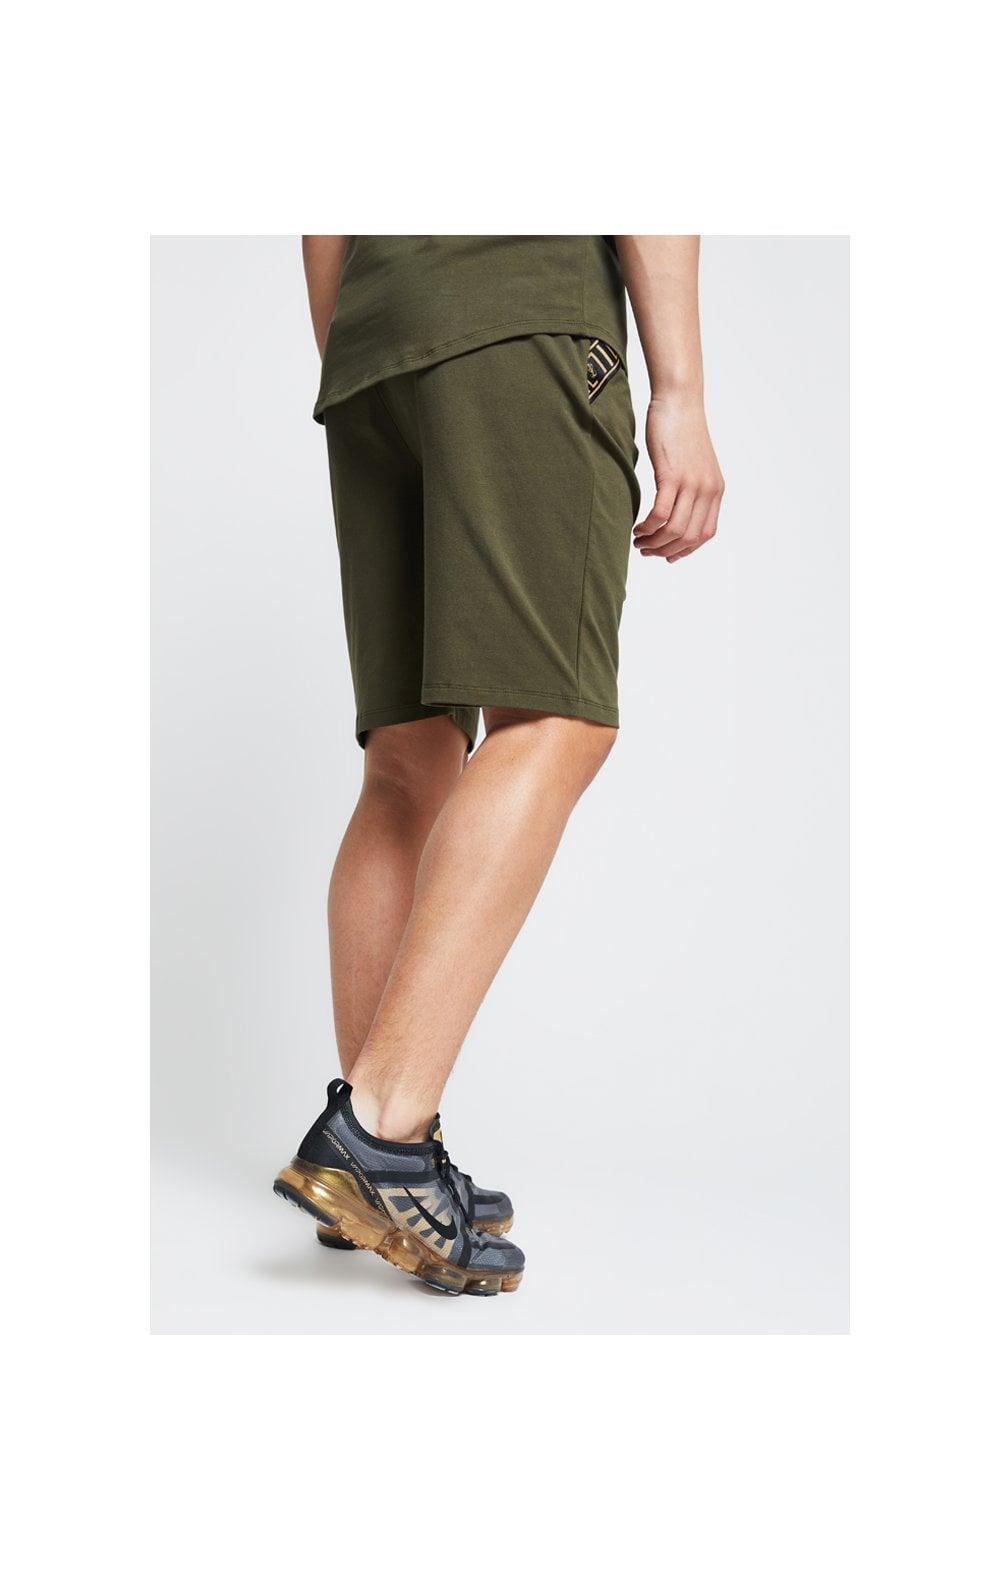 Illusive London Shorts Jersey mit Zierband - Khaki (6)